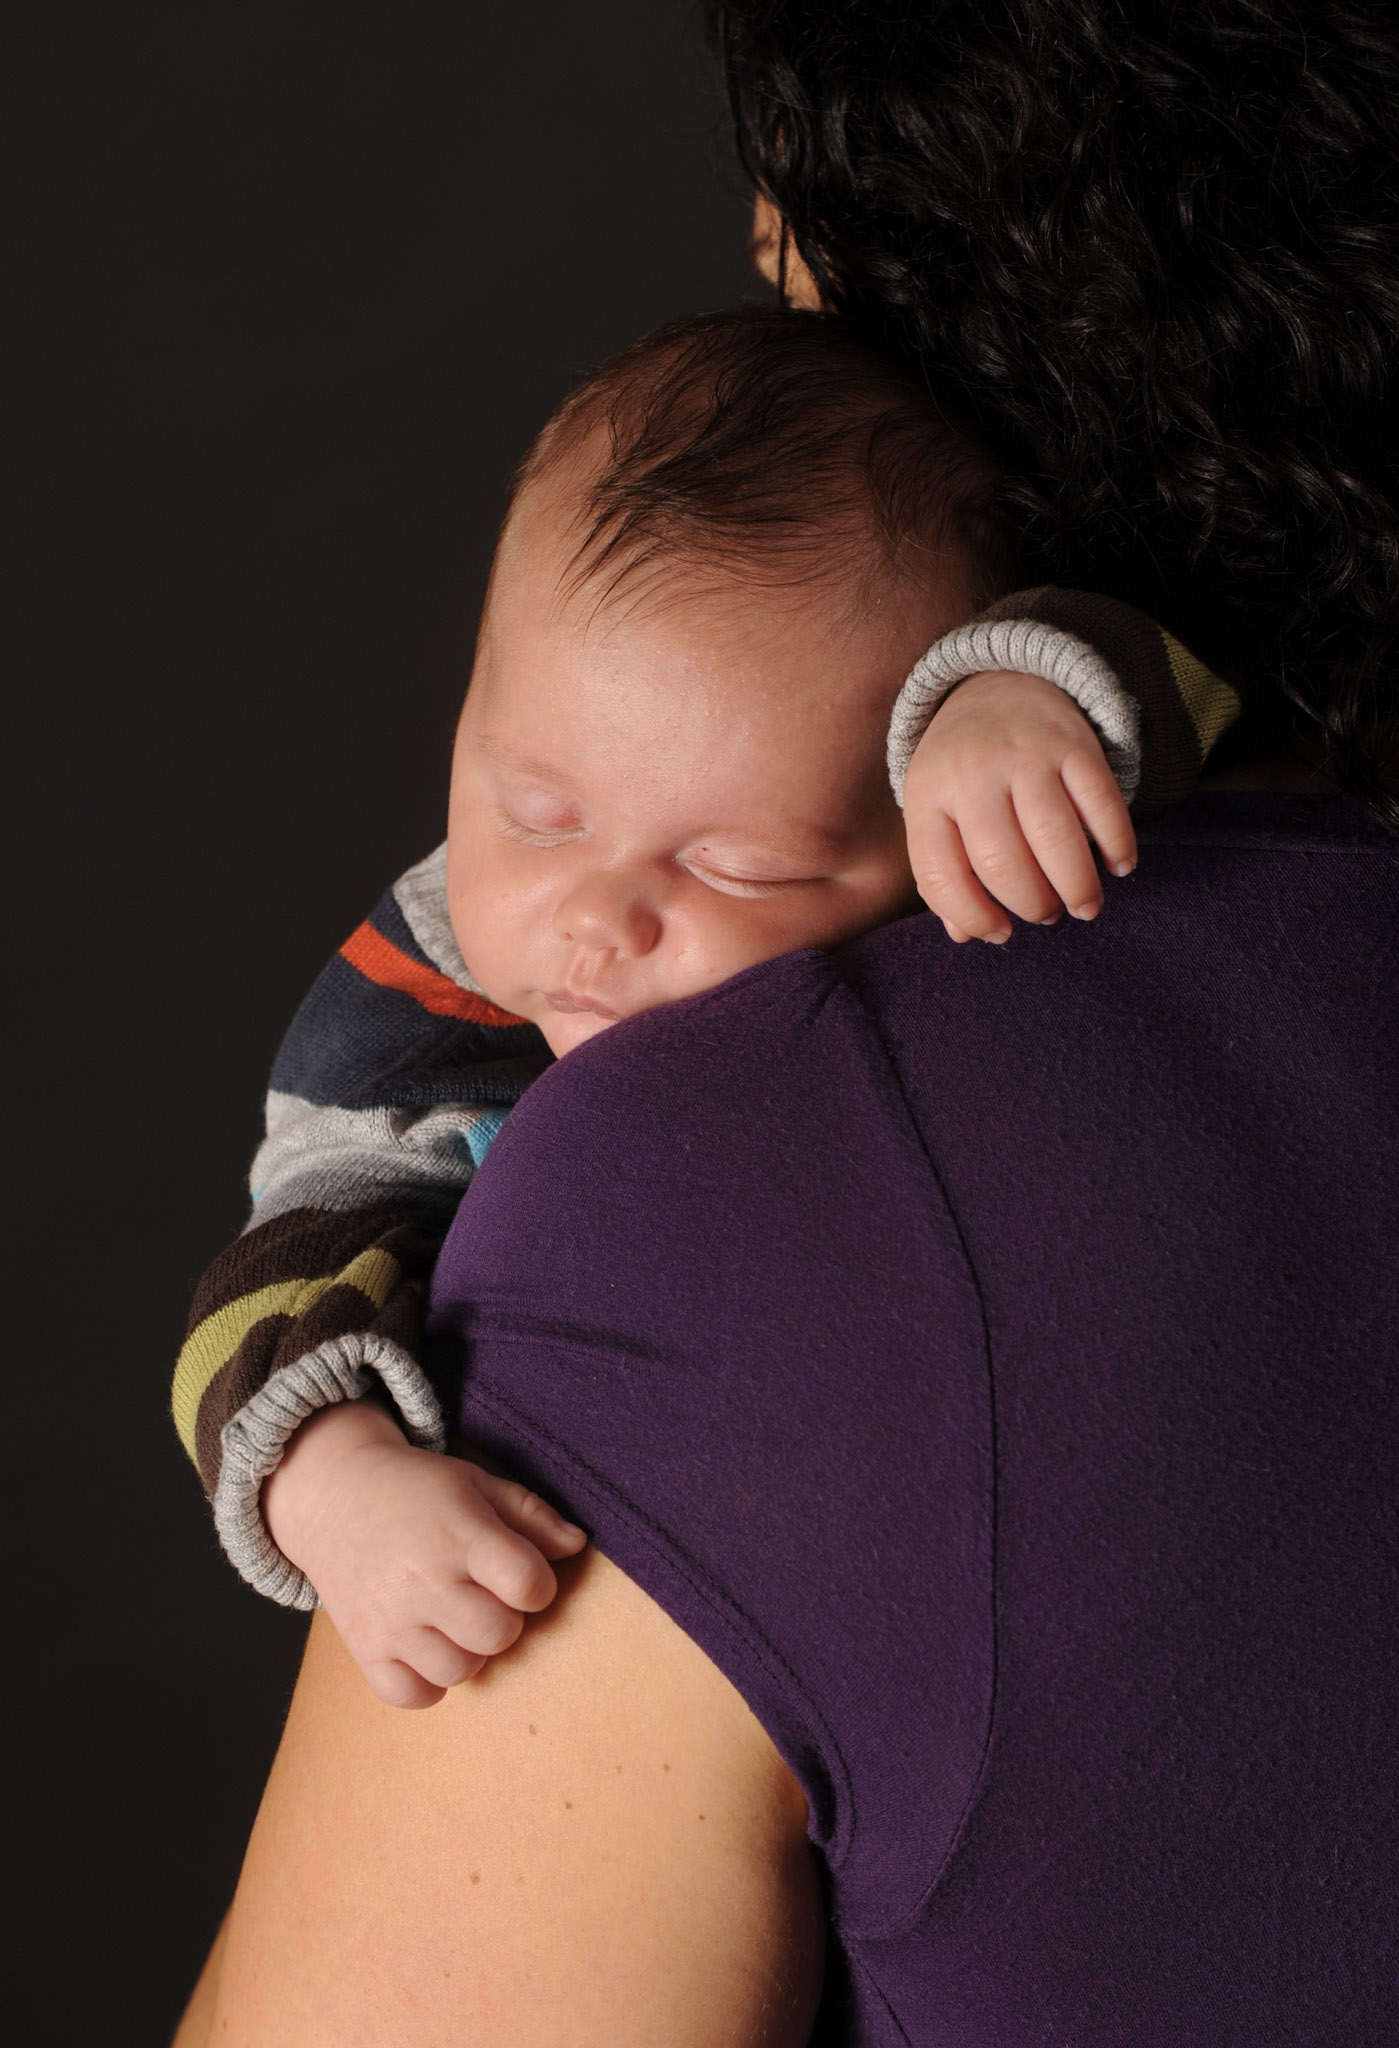 The actual image that was used on the cover of City Parent magazine, featuring Hudson and Susie.